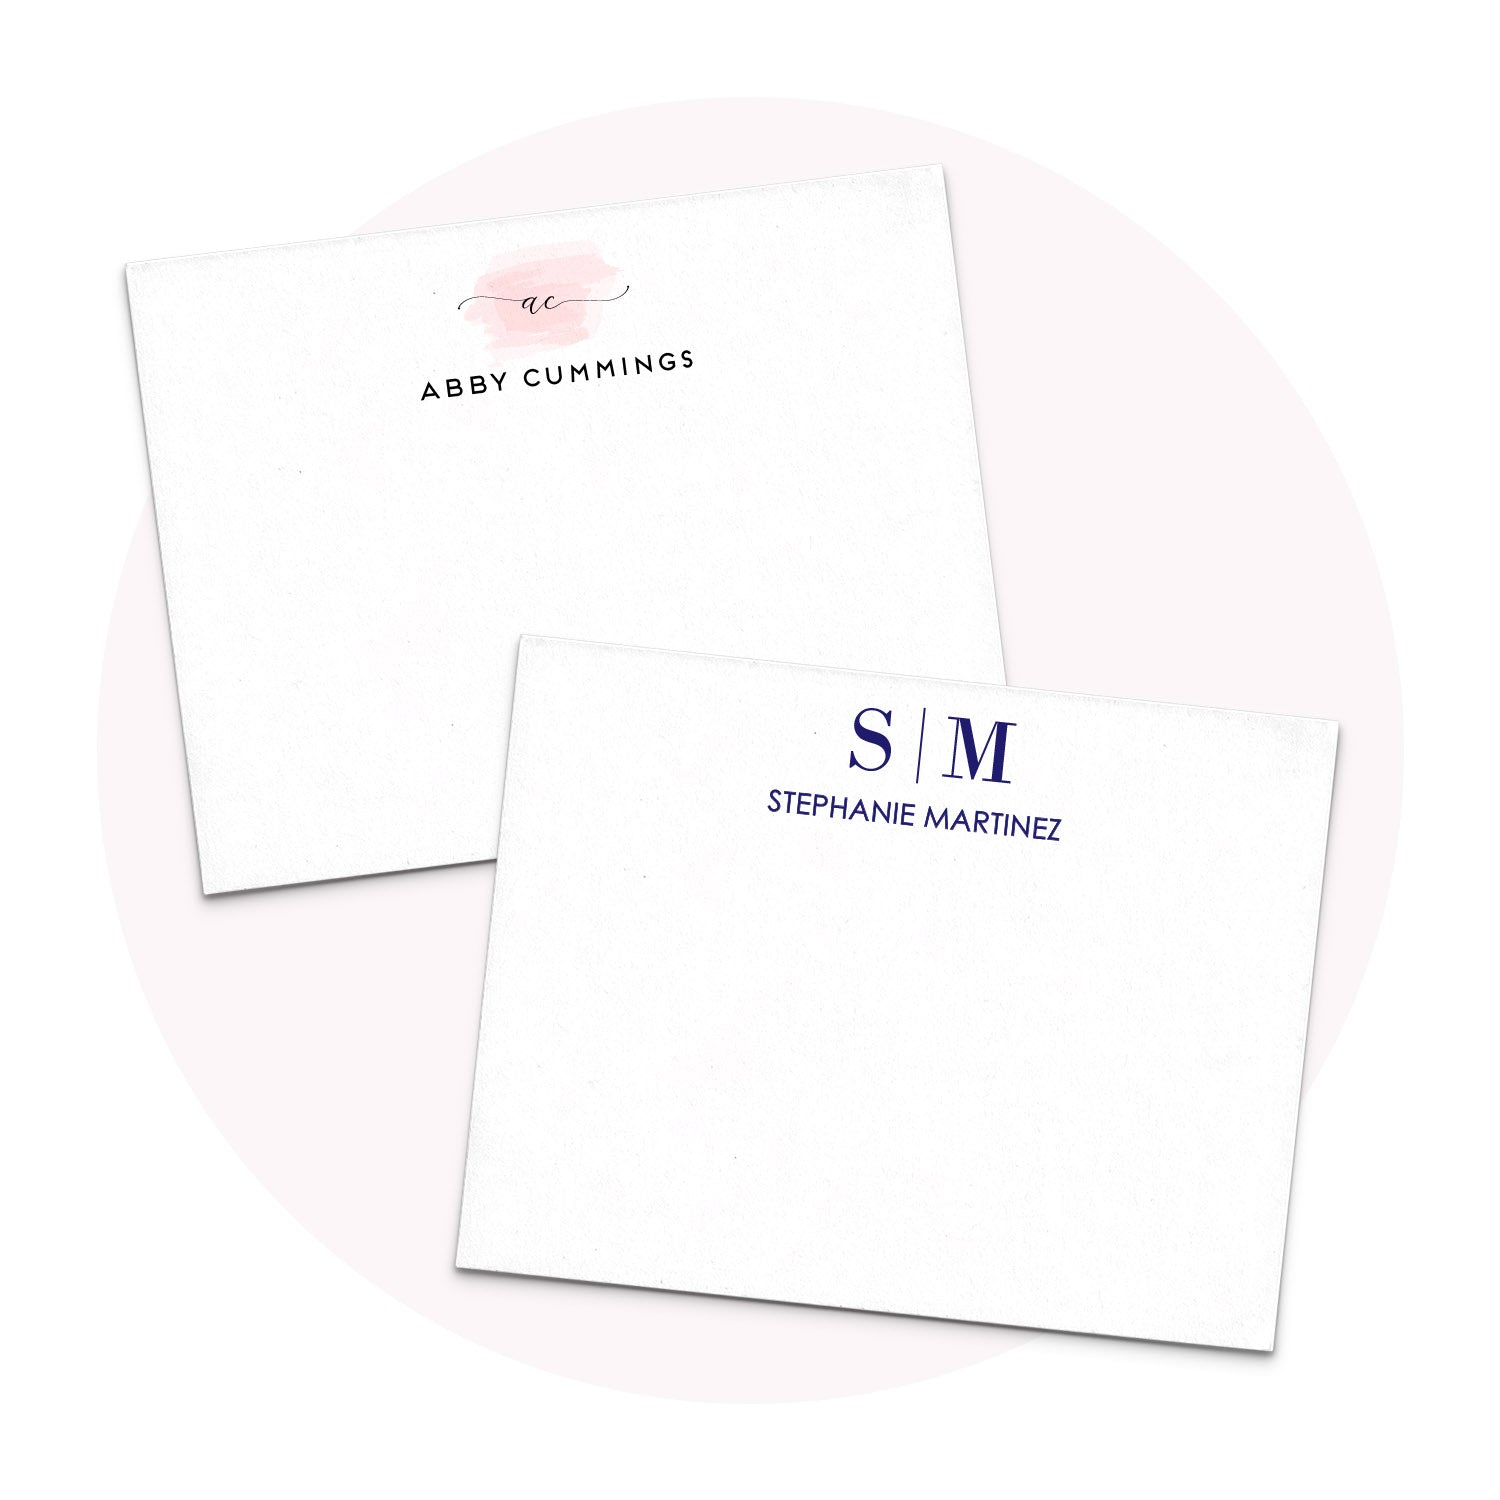 Monogram Stationery note cards for men and women